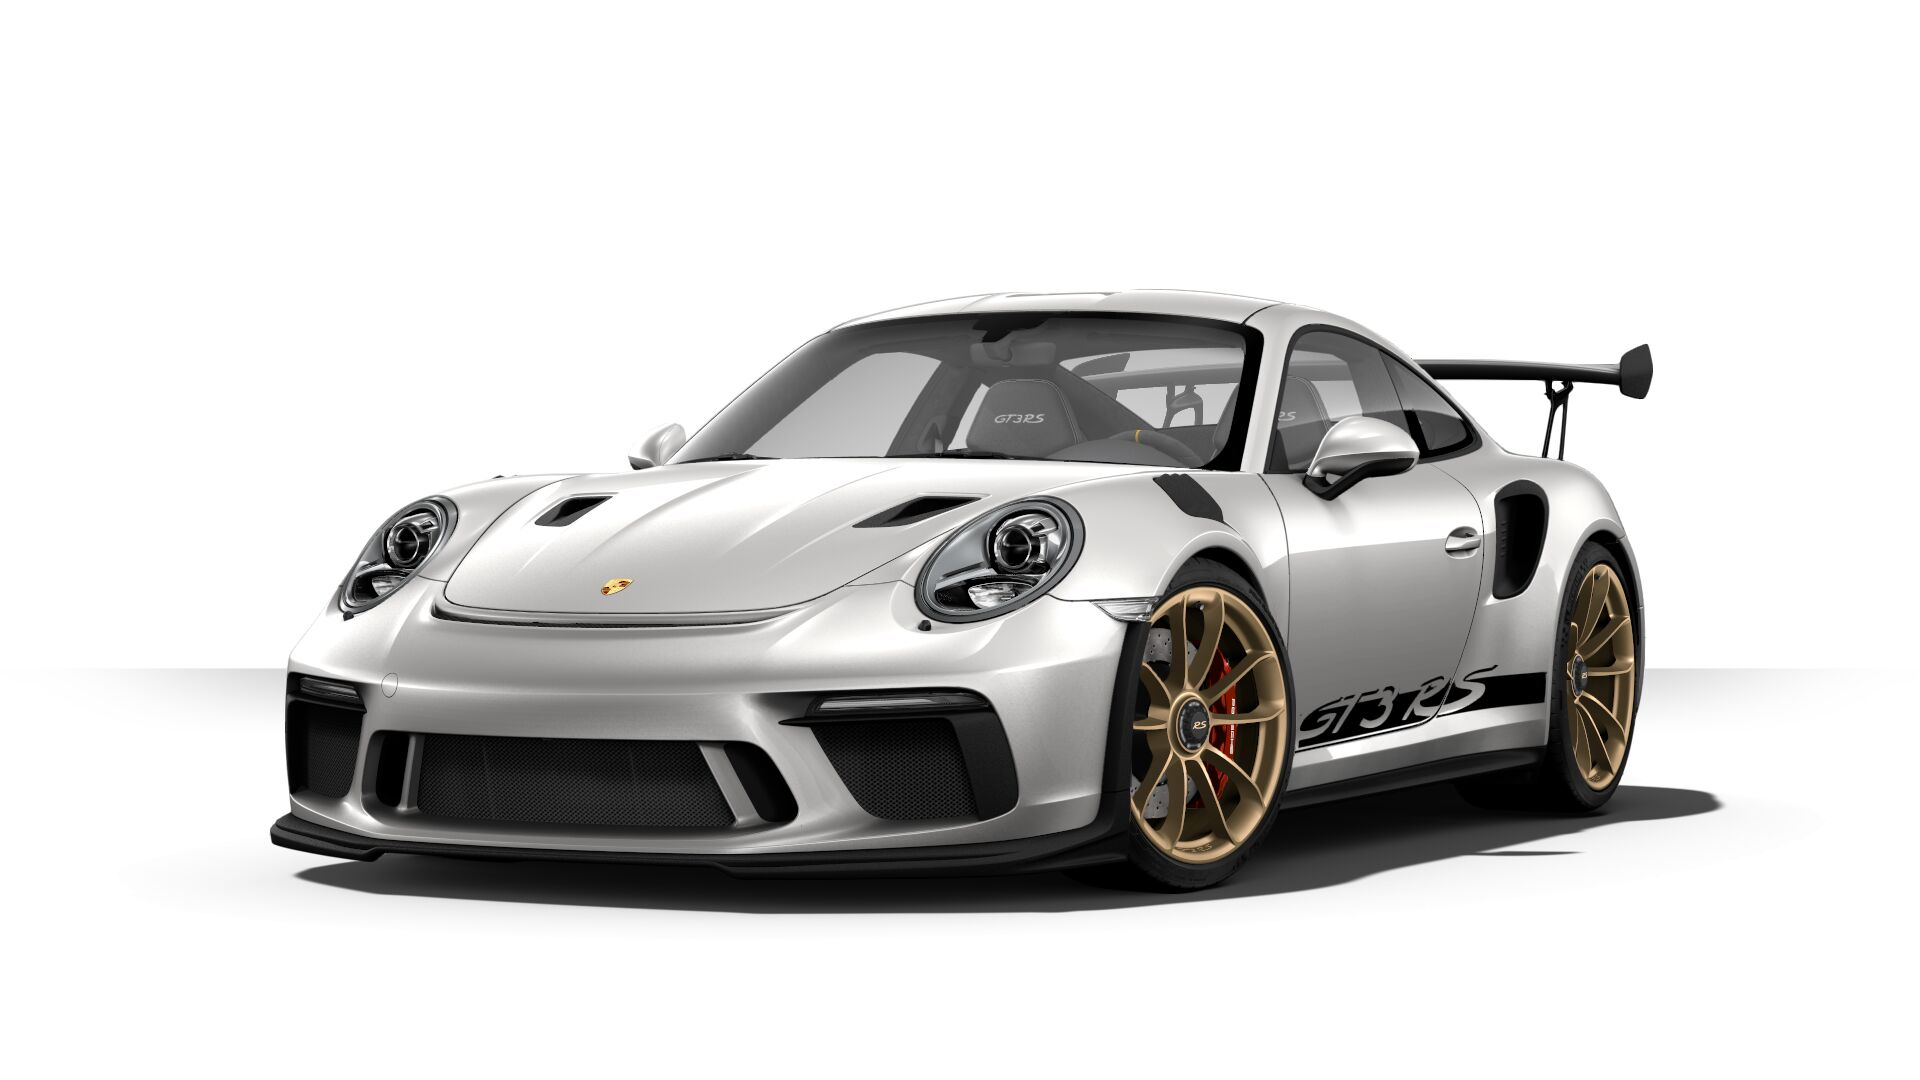 991 gt3 rs in gt silver a nicer picture of my dream car favorite. Black Bedroom Furniture Sets. Home Design Ideas